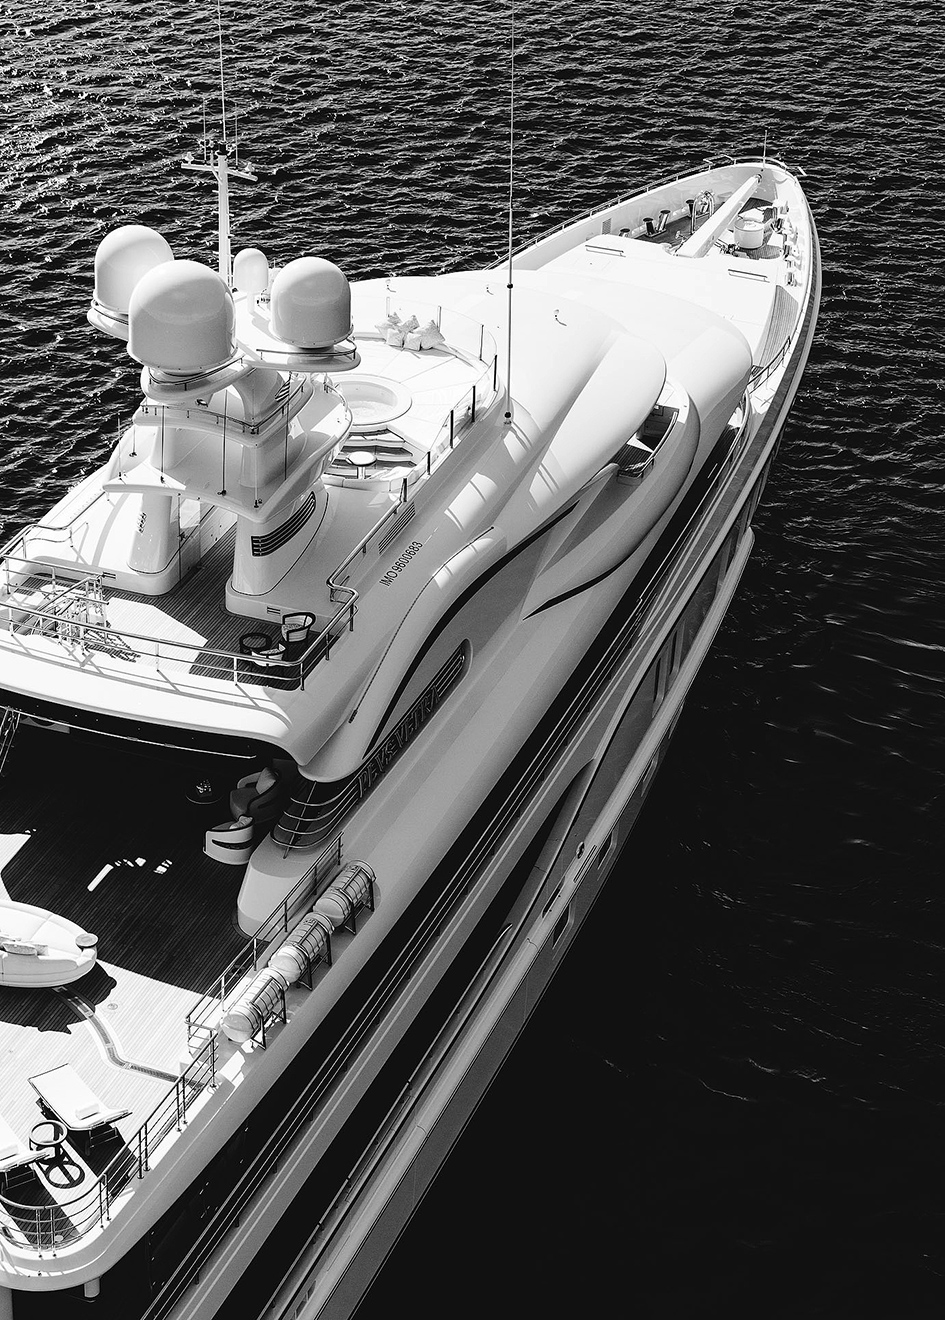 the-mast-of-the-amels-super-yacht-plvs-vltra